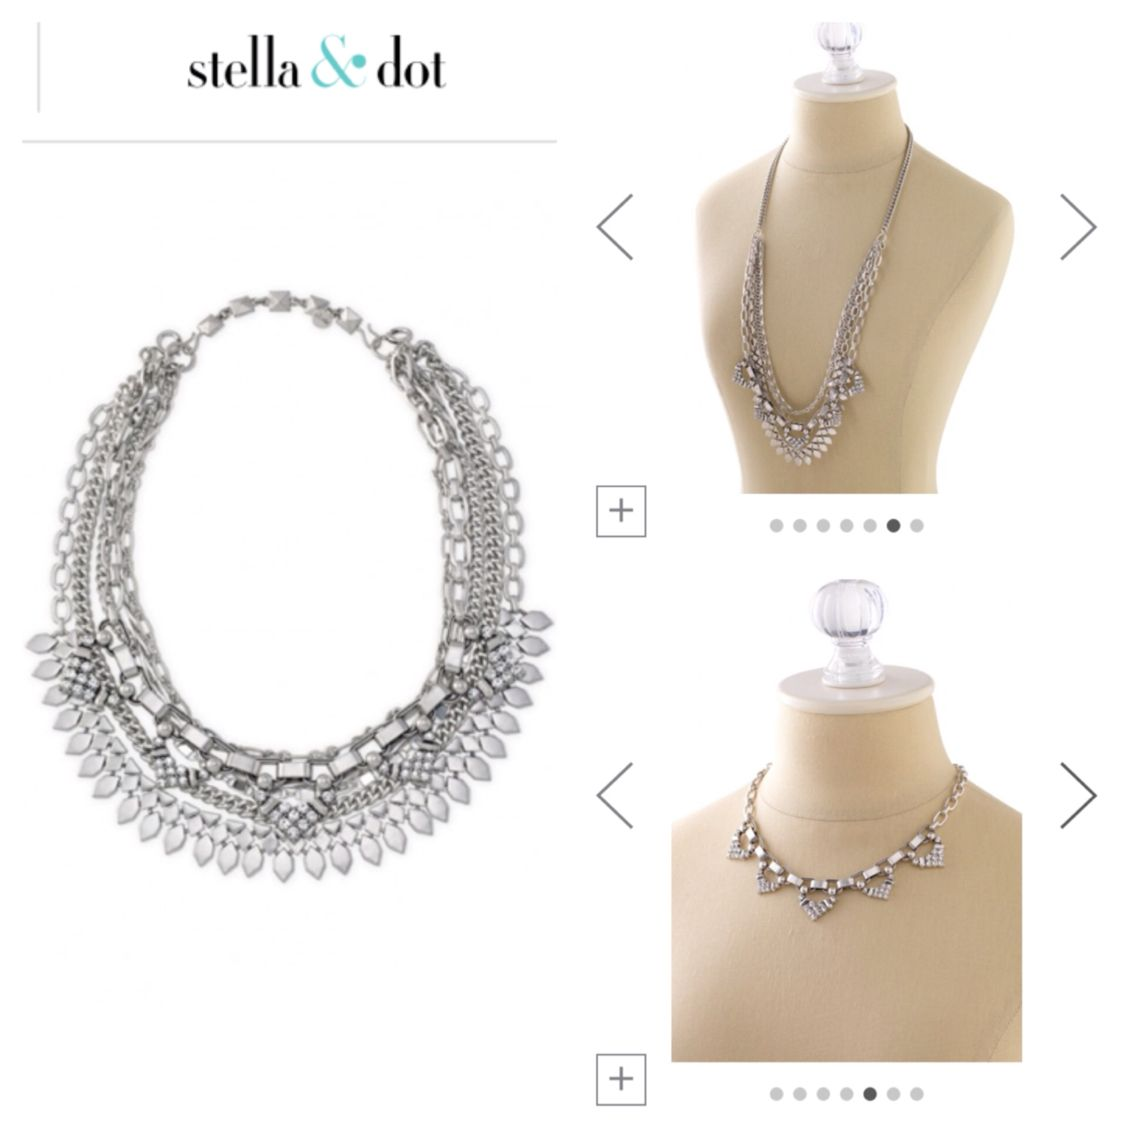 Sutton in silver, can be worn multiple ways. Stella & Dot